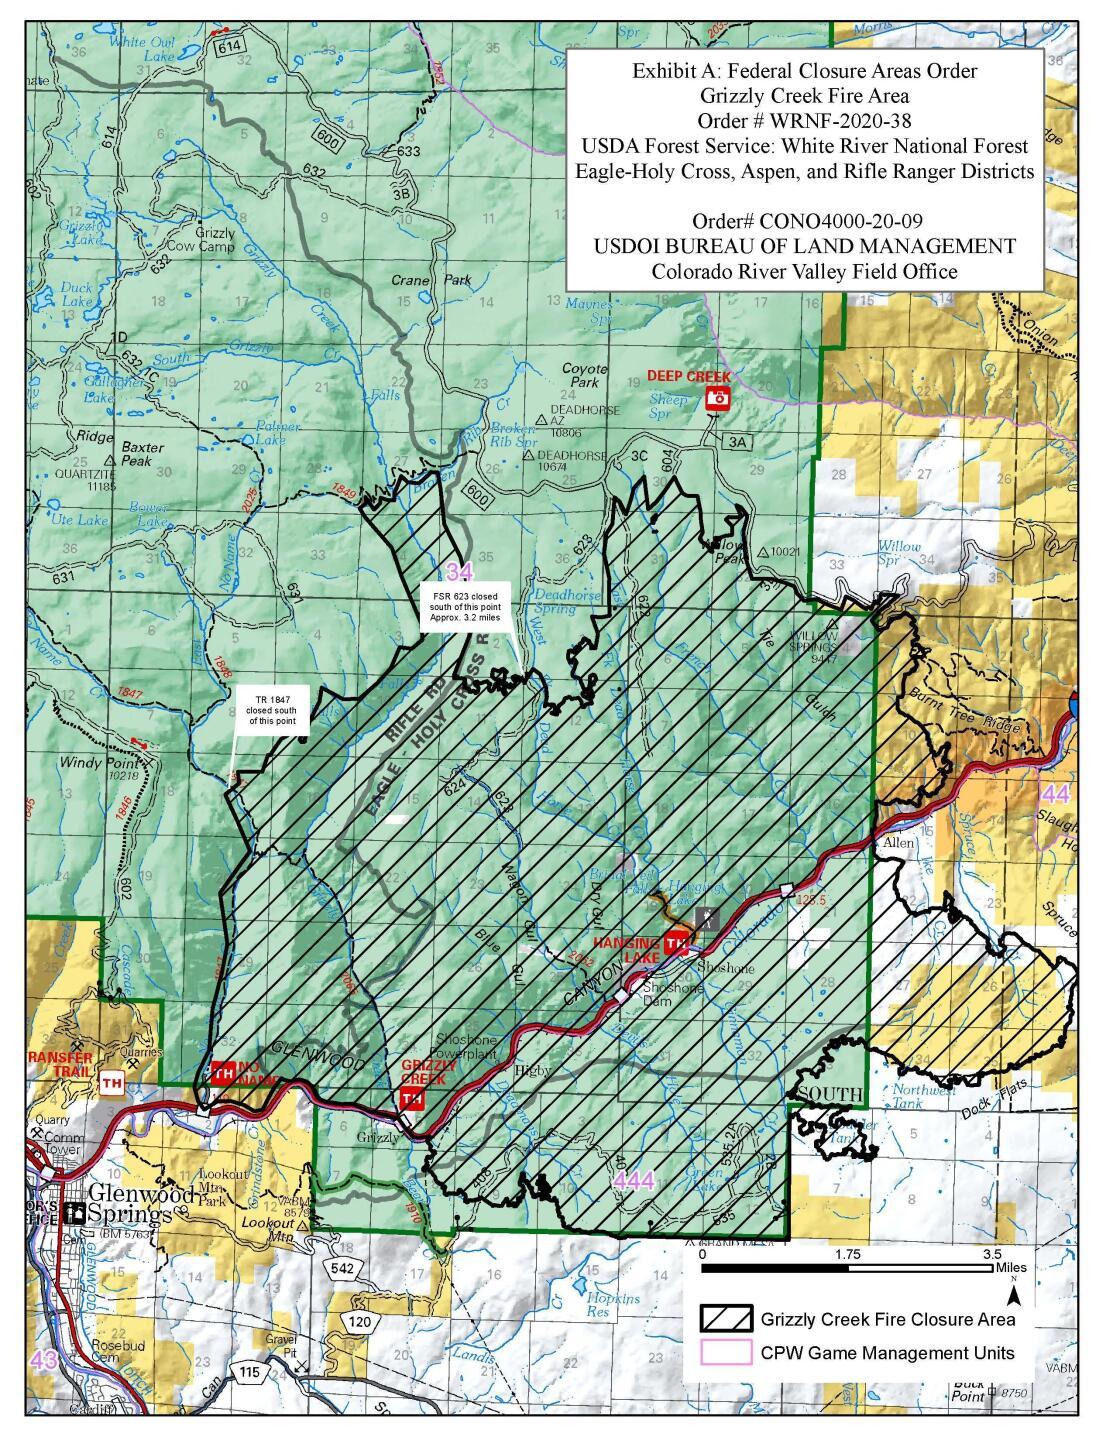 9-26-20 grizzly creek closure map.jpeg